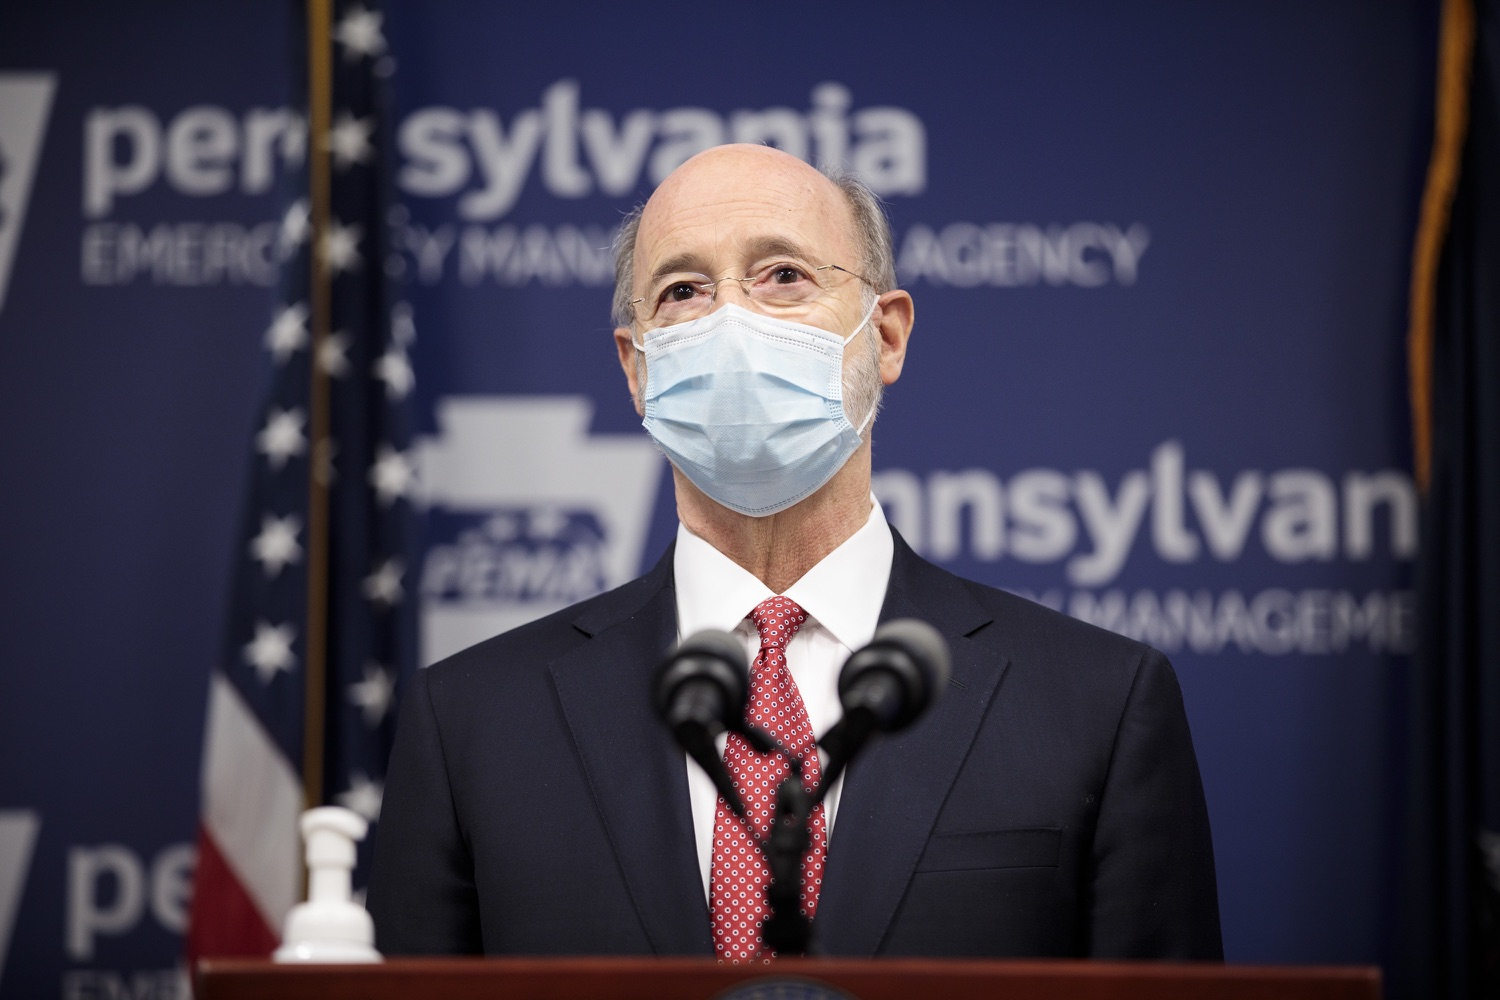 """<a href=""""https://filesource.wostreaming.net/commonwealthofpa/photo/18465_gov_electoralCollege_dz_09.jpg"""" target=""""_blank"""">⇣Download Photo<br></a>Pennsylvania Governor Tom Wolf speaking at the press conference.  With Congress preparing to count Electoral College votes today, Governor Tom Wolf was joined by Secretary of State Kathy Boockvar and Philadelphia City Commissioner Al Schmidt to emphasize that Pennsylvania had a free, fair and secure election. All efforts by Congressional Republicans to overthrow the election results and subvert the will of the voters are disgraceful and must be rejected. Harrisburg, PA  January 6, 2021"""